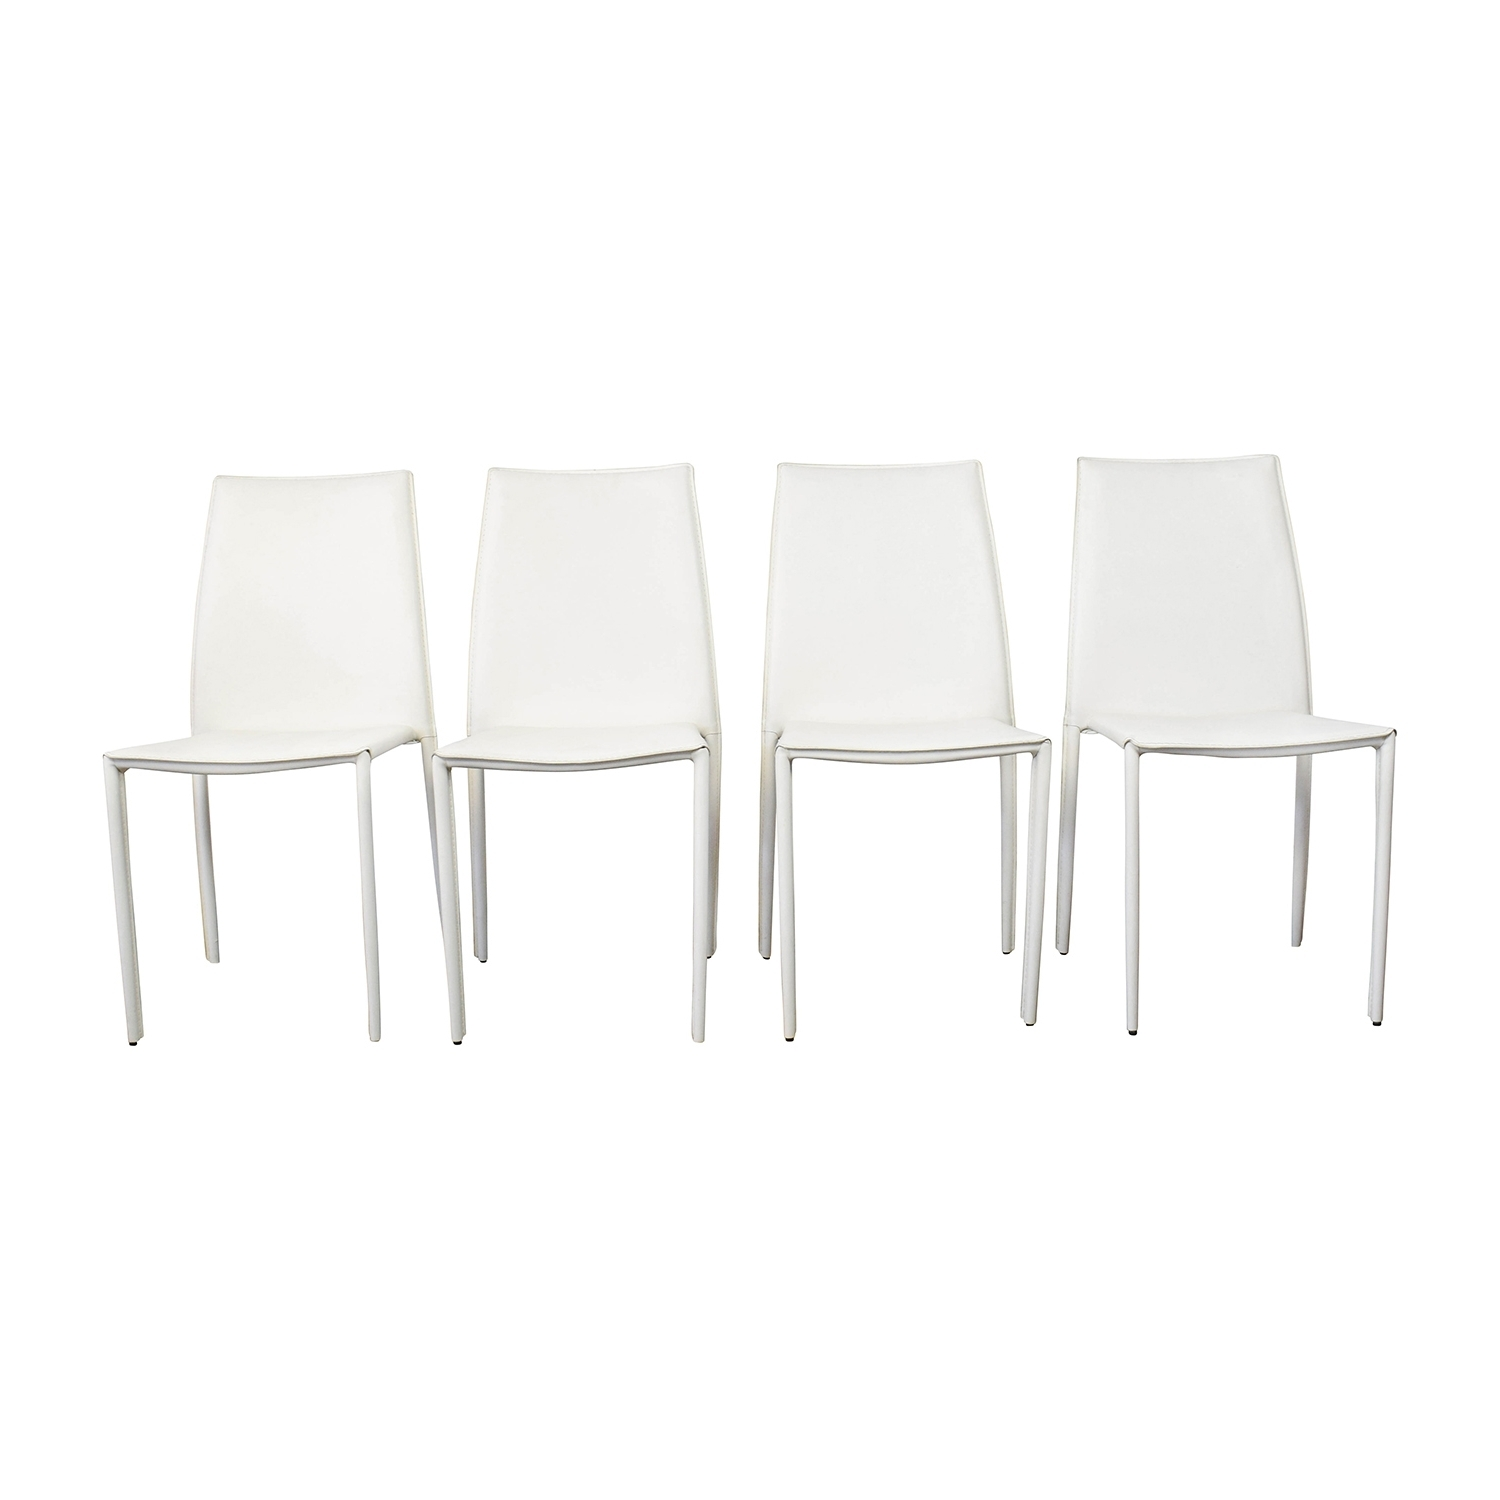 [%77% Off – All Modern All Modern White Leather Dining Chairs / Chairs Pertaining To Fashionable White Leather Dining Chairs|White Leather Dining Chairs With Most Recent 77% Off – All Modern All Modern White Leather Dining Chairs / Chairs|Most Current White Leather Dining Chairs Pertaining To 77% Off – All Modern All Modern White Leather Dining Chairs / Chairs|Newest 77% Off – All Modern All Modern White Leather Dining Chairs / Chairs With White Leather Dining Chairs%] (View 1 of 25)